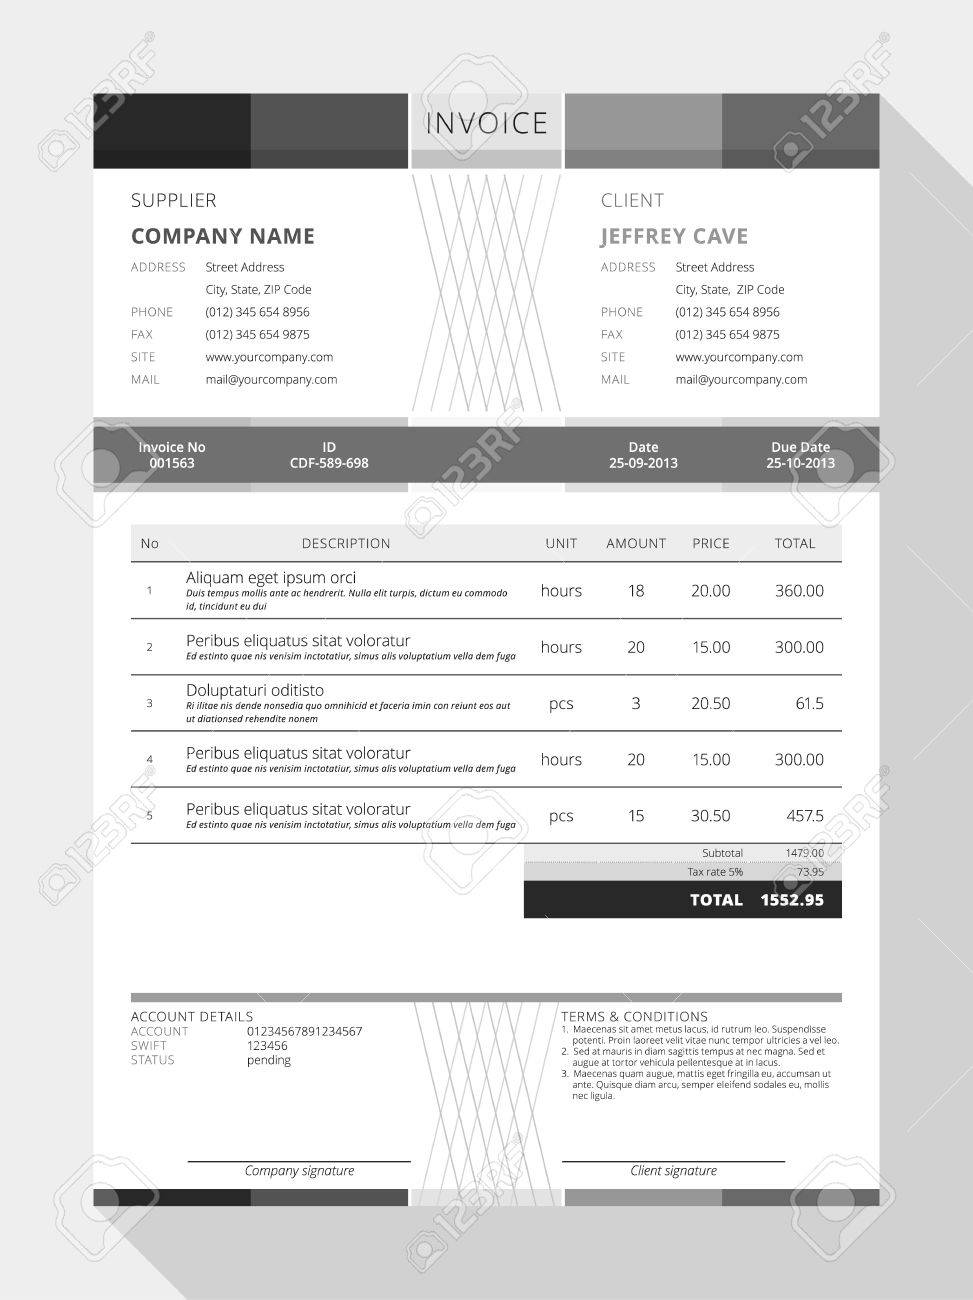 Ultrablogus  Marvellous Design An Invoice  Professional Graphic Design Invoice  With Marvelous Vector Customizable Invoice Form Template Design Vector   Design An Invoice With Amazing Past Due Invoice Template Also Freelance Graphic Design Invoice In Addition Free Auto Repair Invoice And Invoice In Word As Well As Factor Invoices Additionally Invoice Wiki From Happytomco With Ultrablogus  Marvelous Design An Invoice  Professional Graphic Design Invoice  With Amazing Vector Customizable Invoice Form Template Design Vector   Design An Invoice And Marvellous Past Due Invoice Template Also Freelance Graphic Design Invoice In Addition Free Auto Repair Invoice From Happytomco